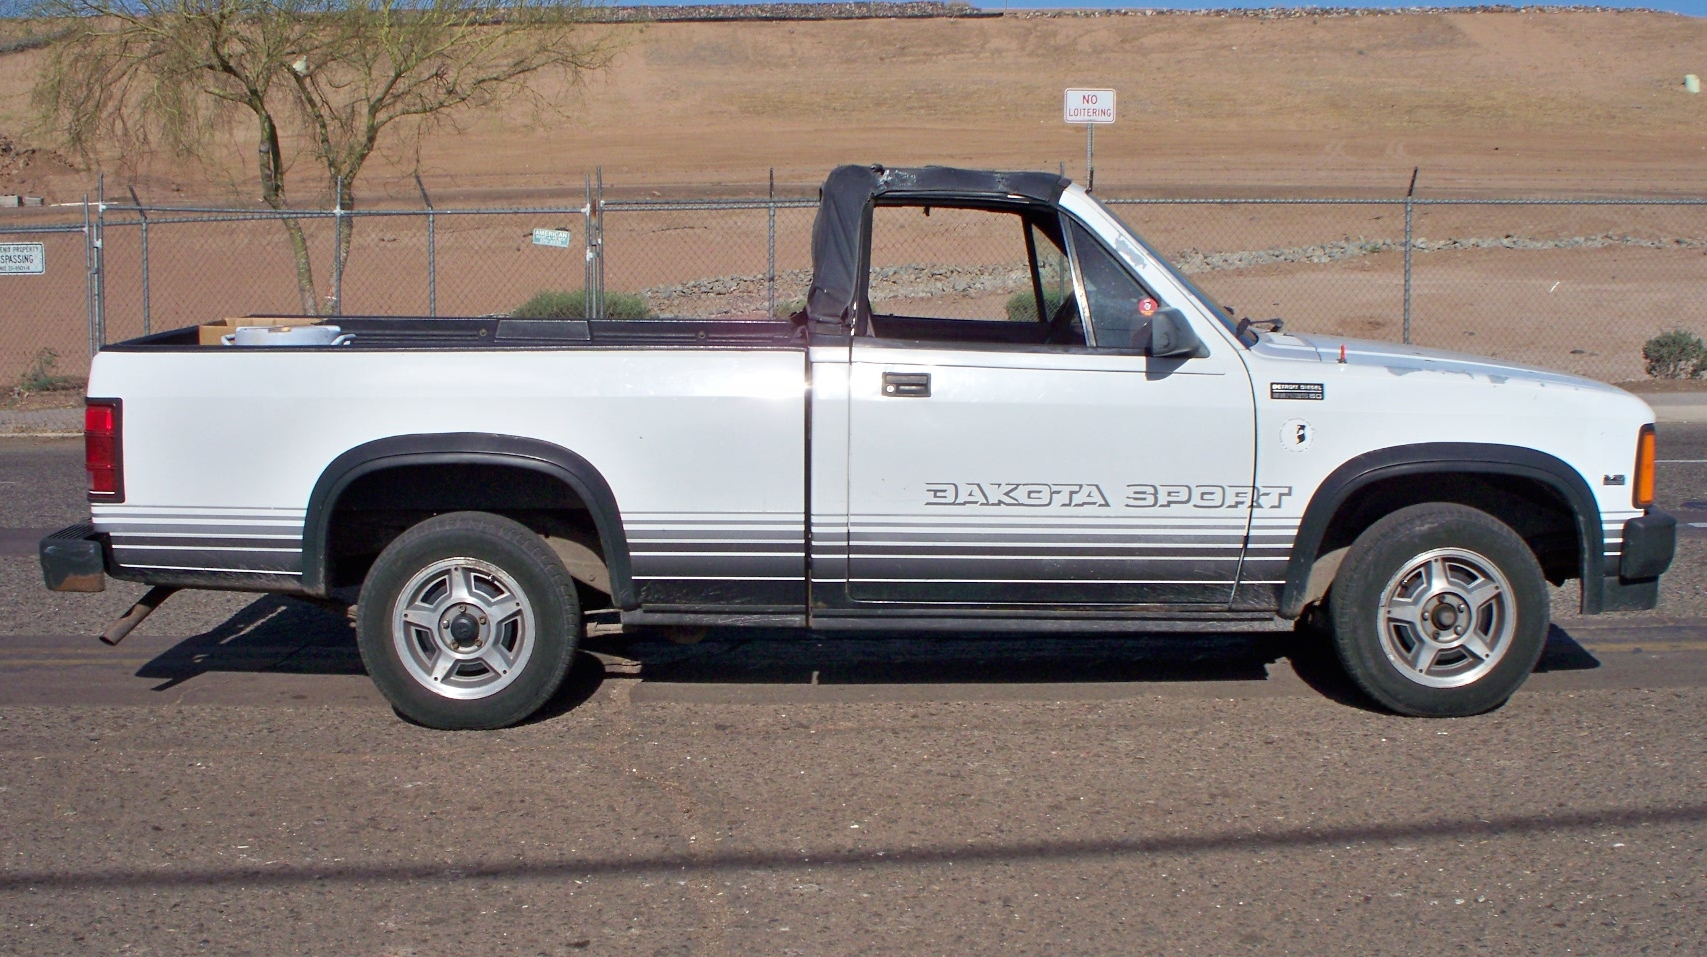 File:1989 Dodge Dakota right side view.jpg